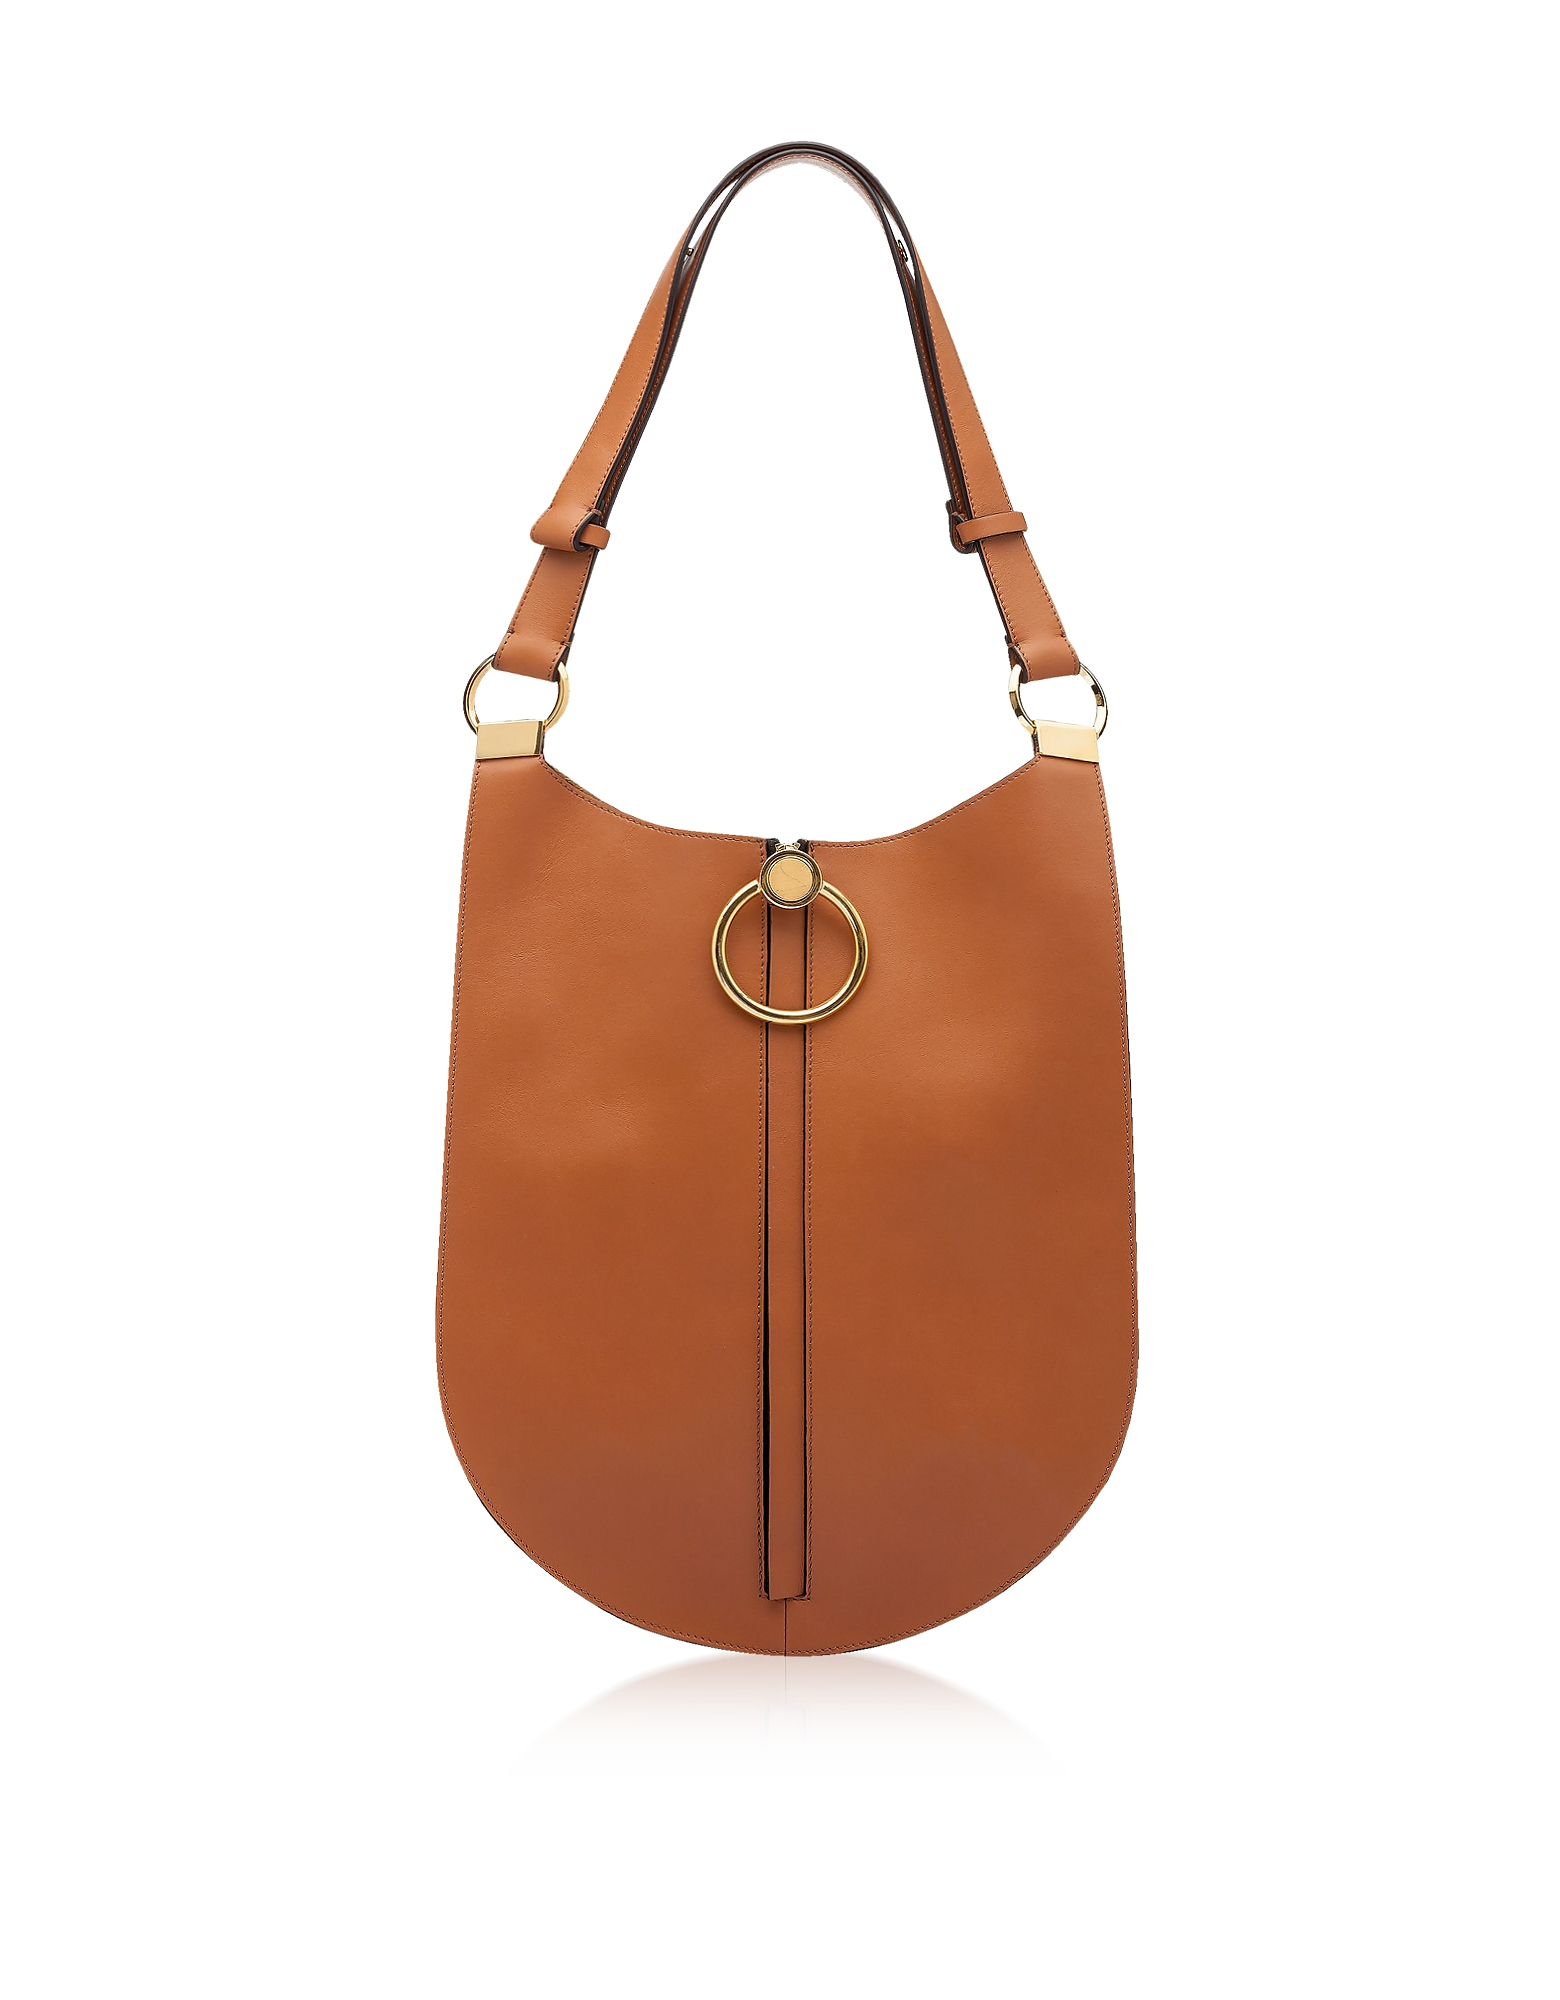 Image of Marni Designer Handbags, Cinnamon Leather Earring Shoulder Bag